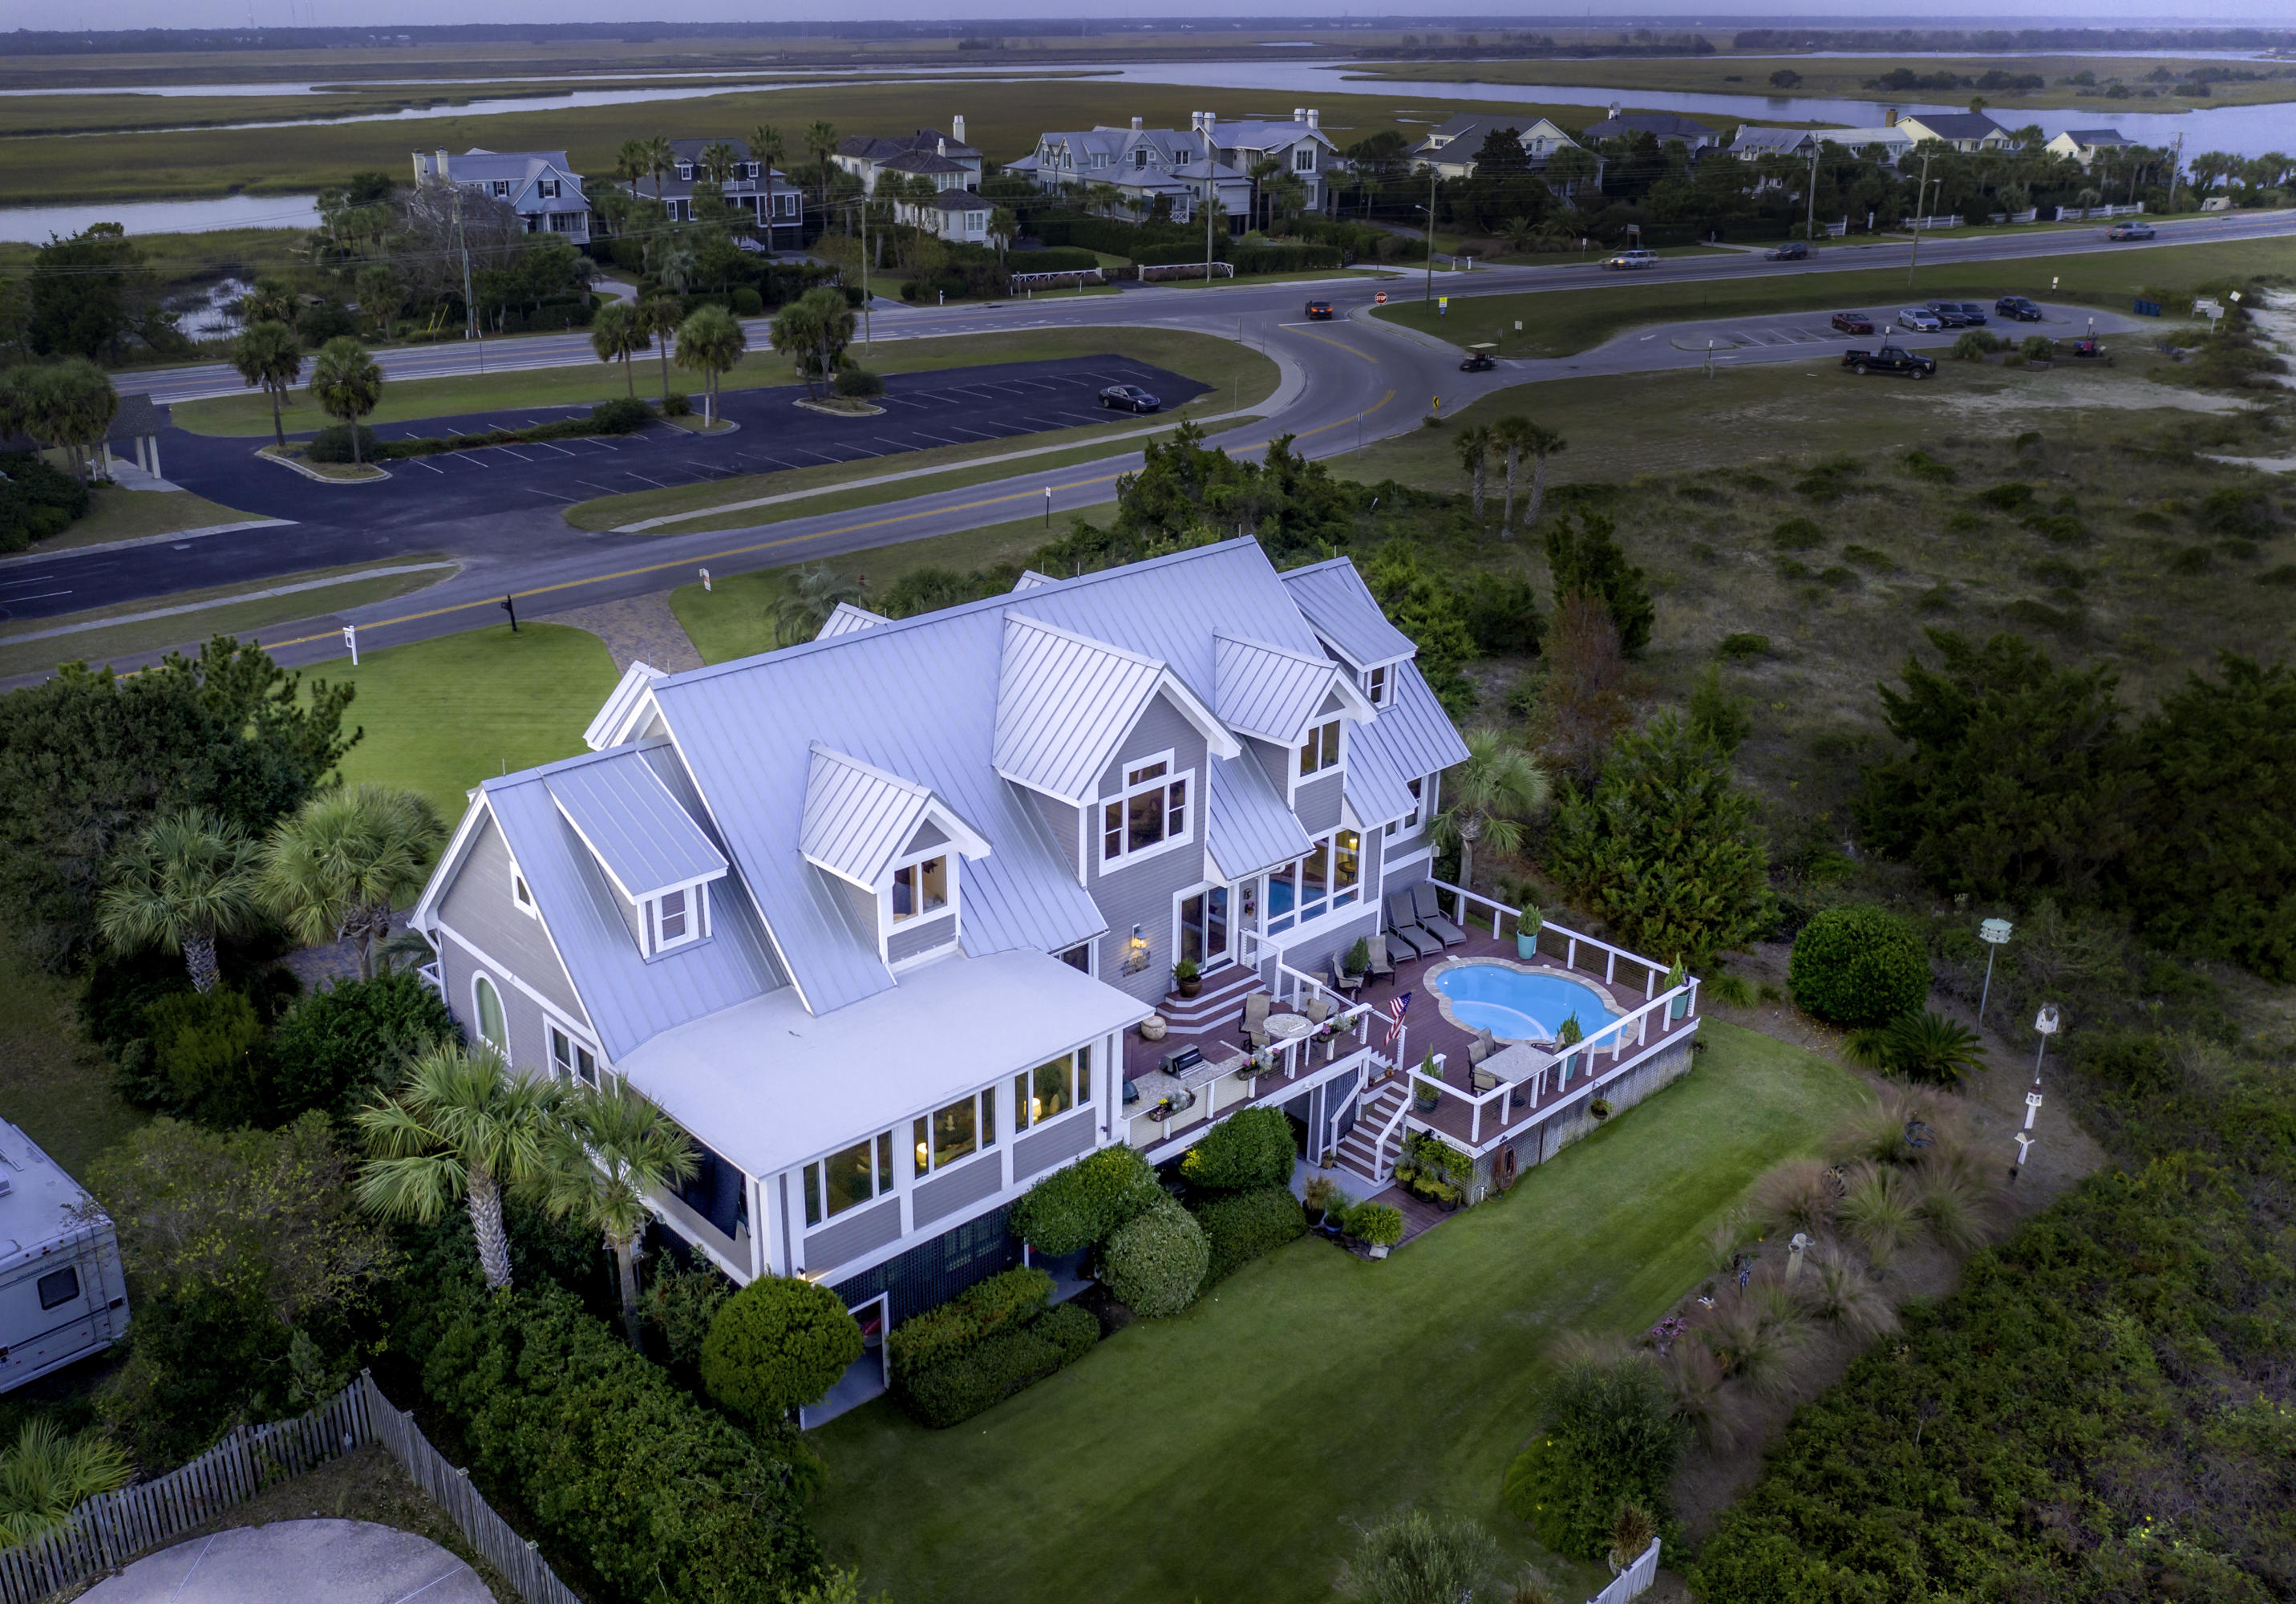 Sullivans Island Homes For Sale - 3217 Middle, Sullivans Island, SC - 11